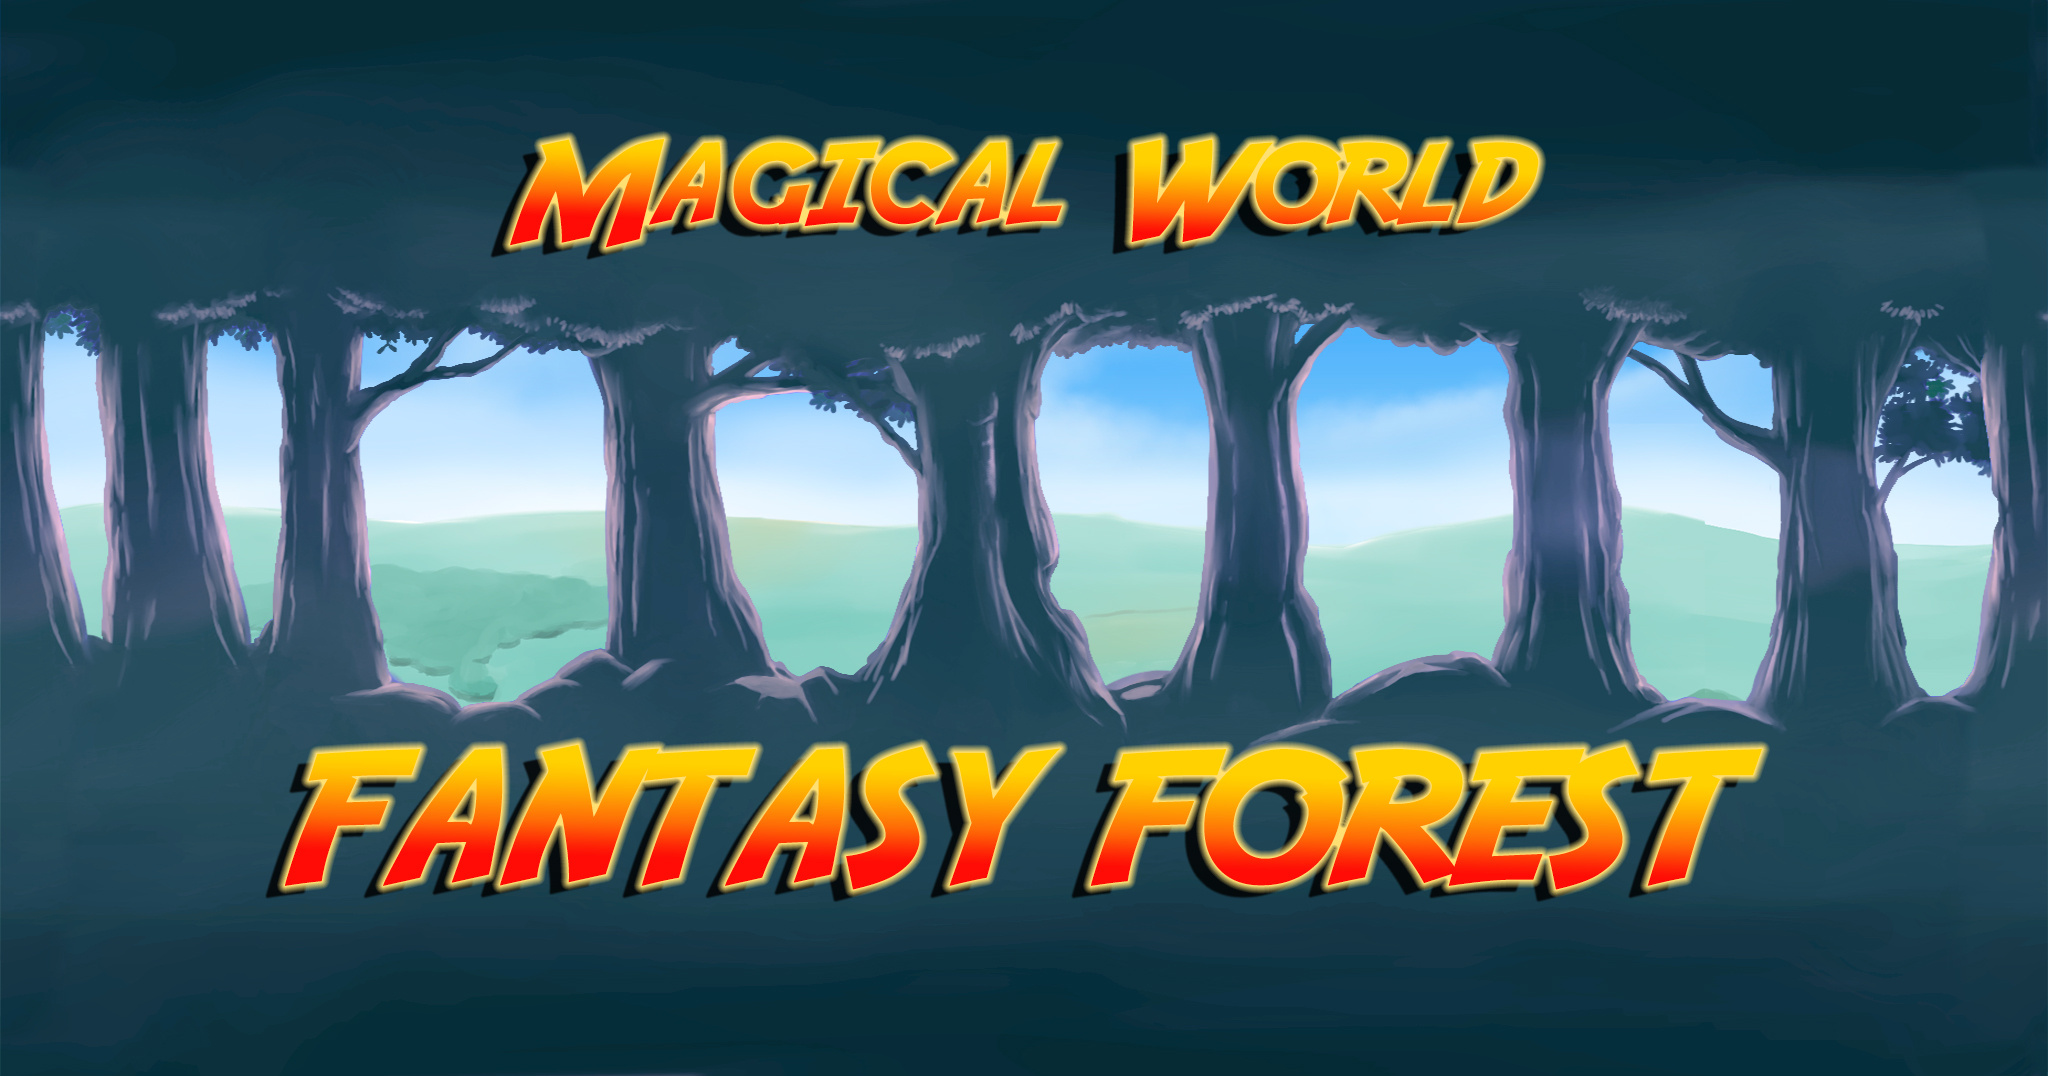 HQ Magical World, Fantasy Forest & Characters